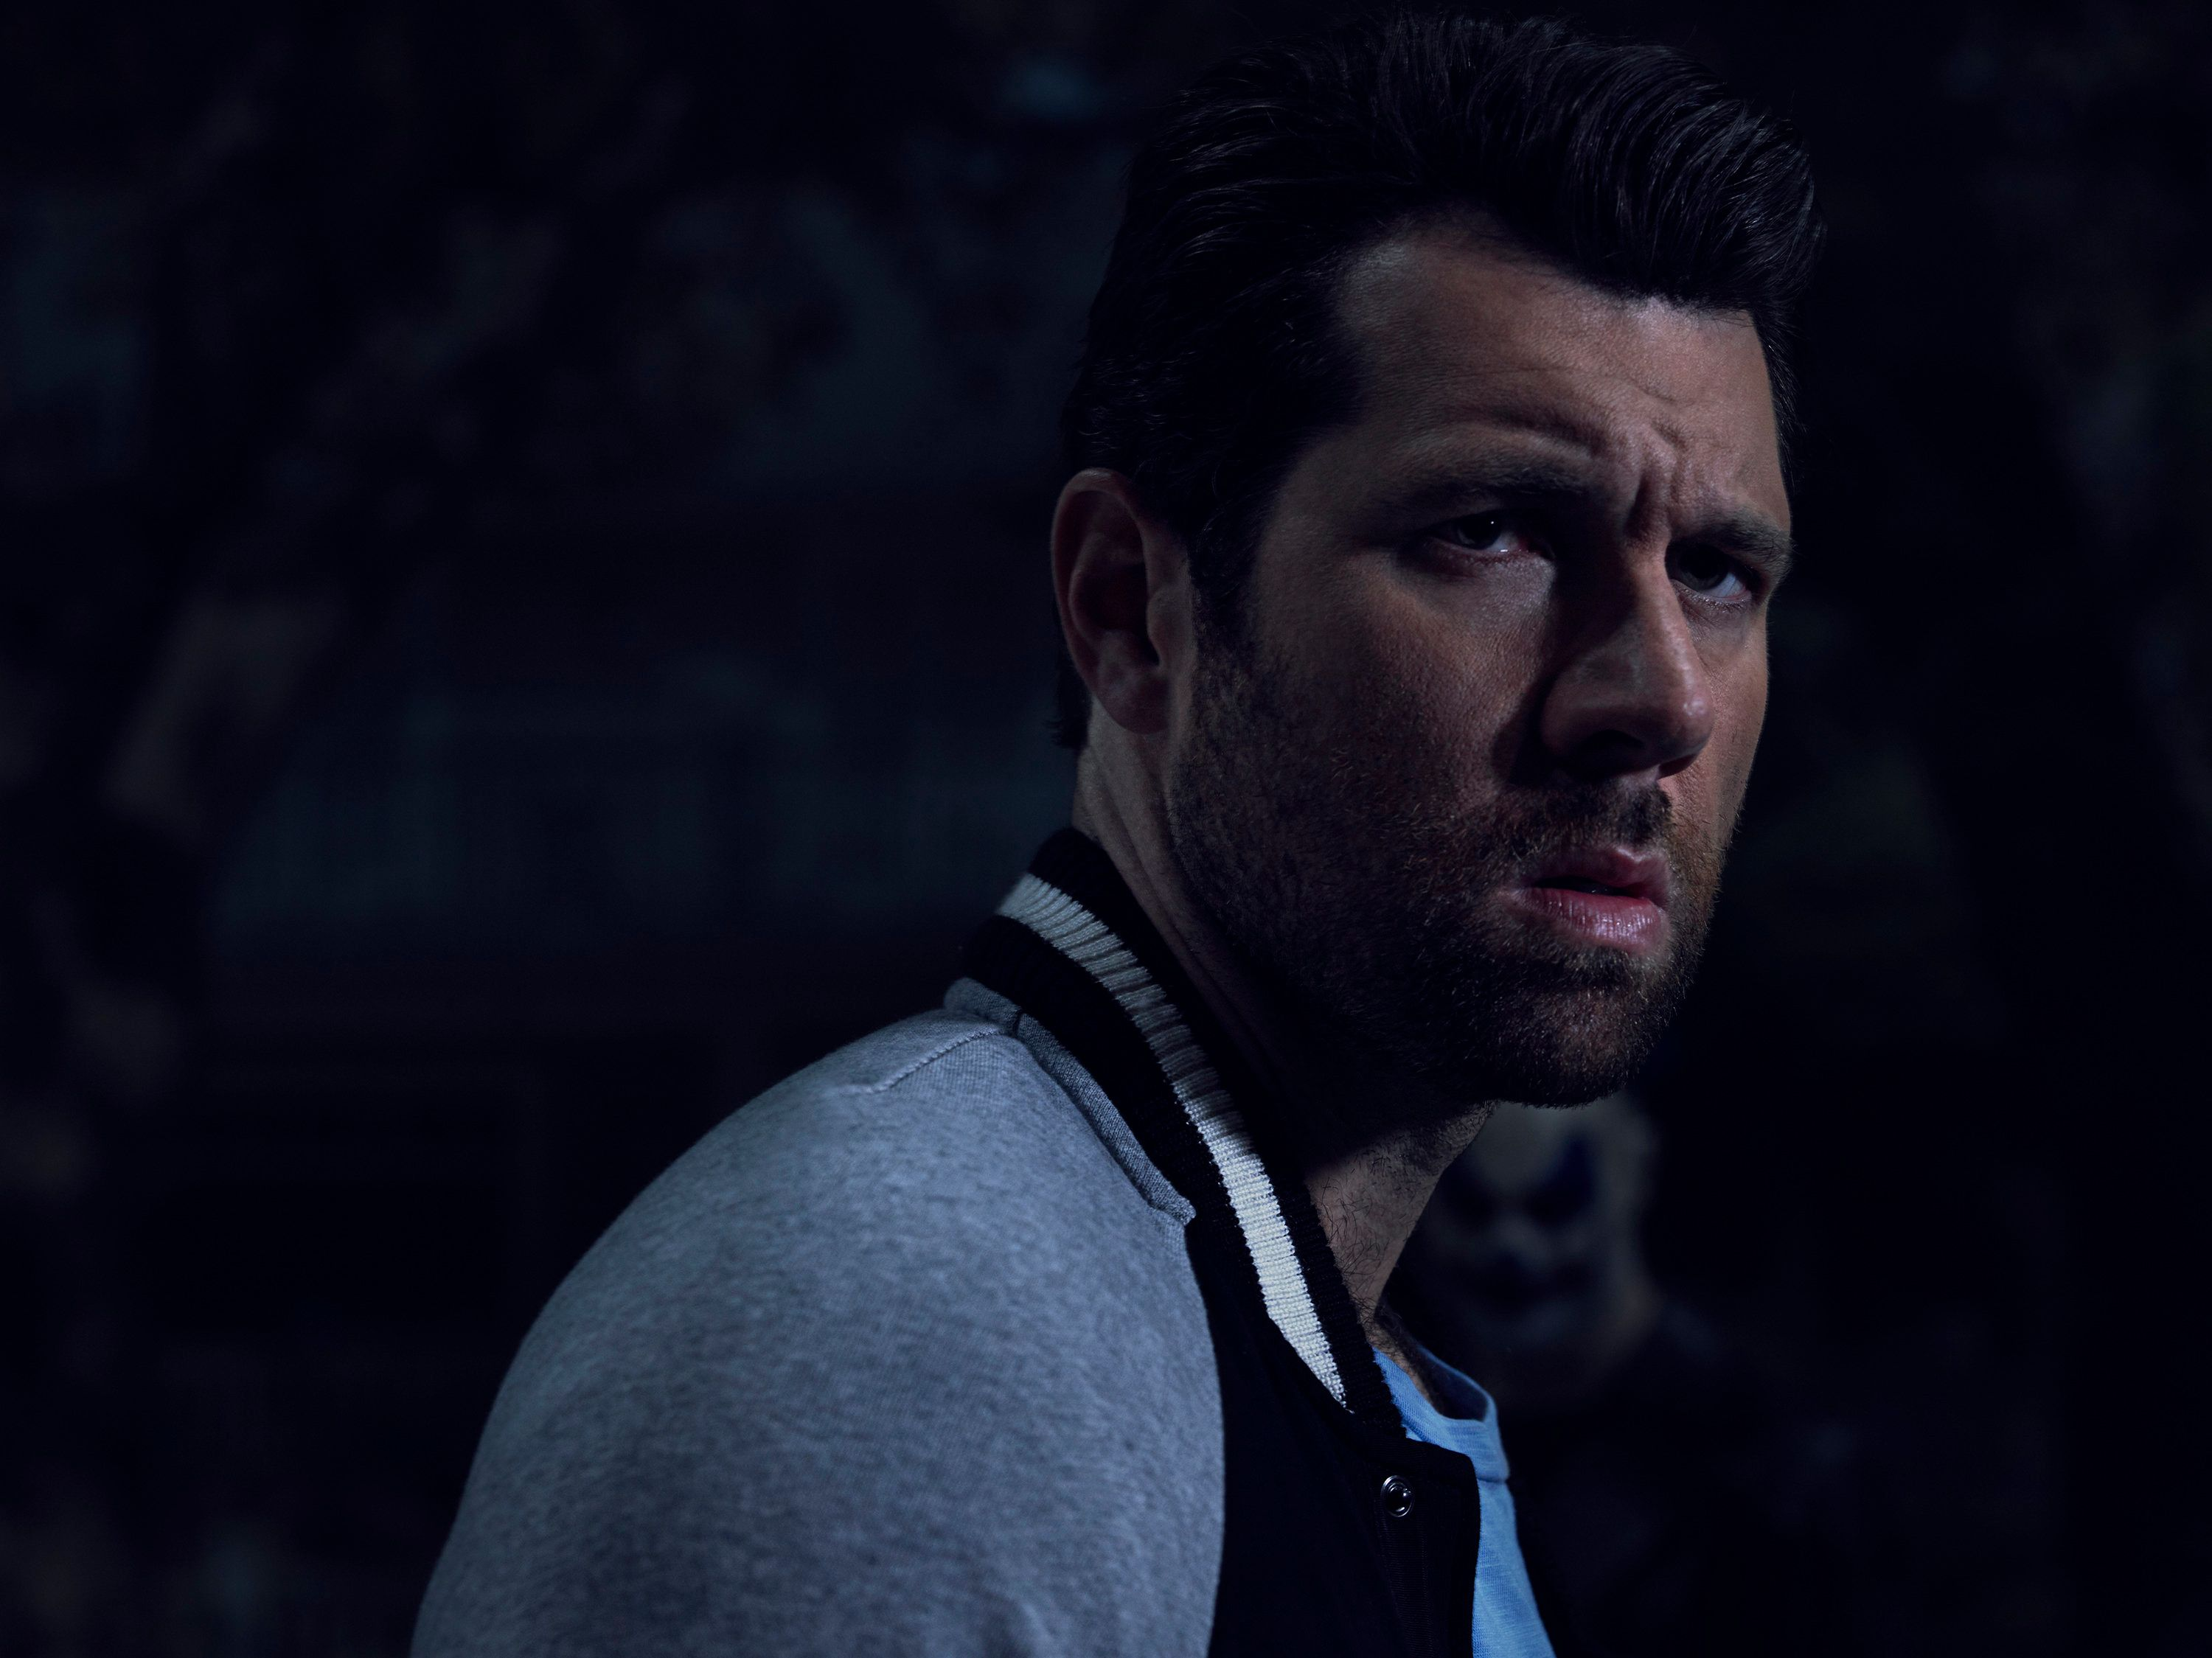 AMERICAN HORROR STORY: CULT -- Pictured: Billy Eichner as Harrison Wilton. CR: Frank Ockenfels/FX